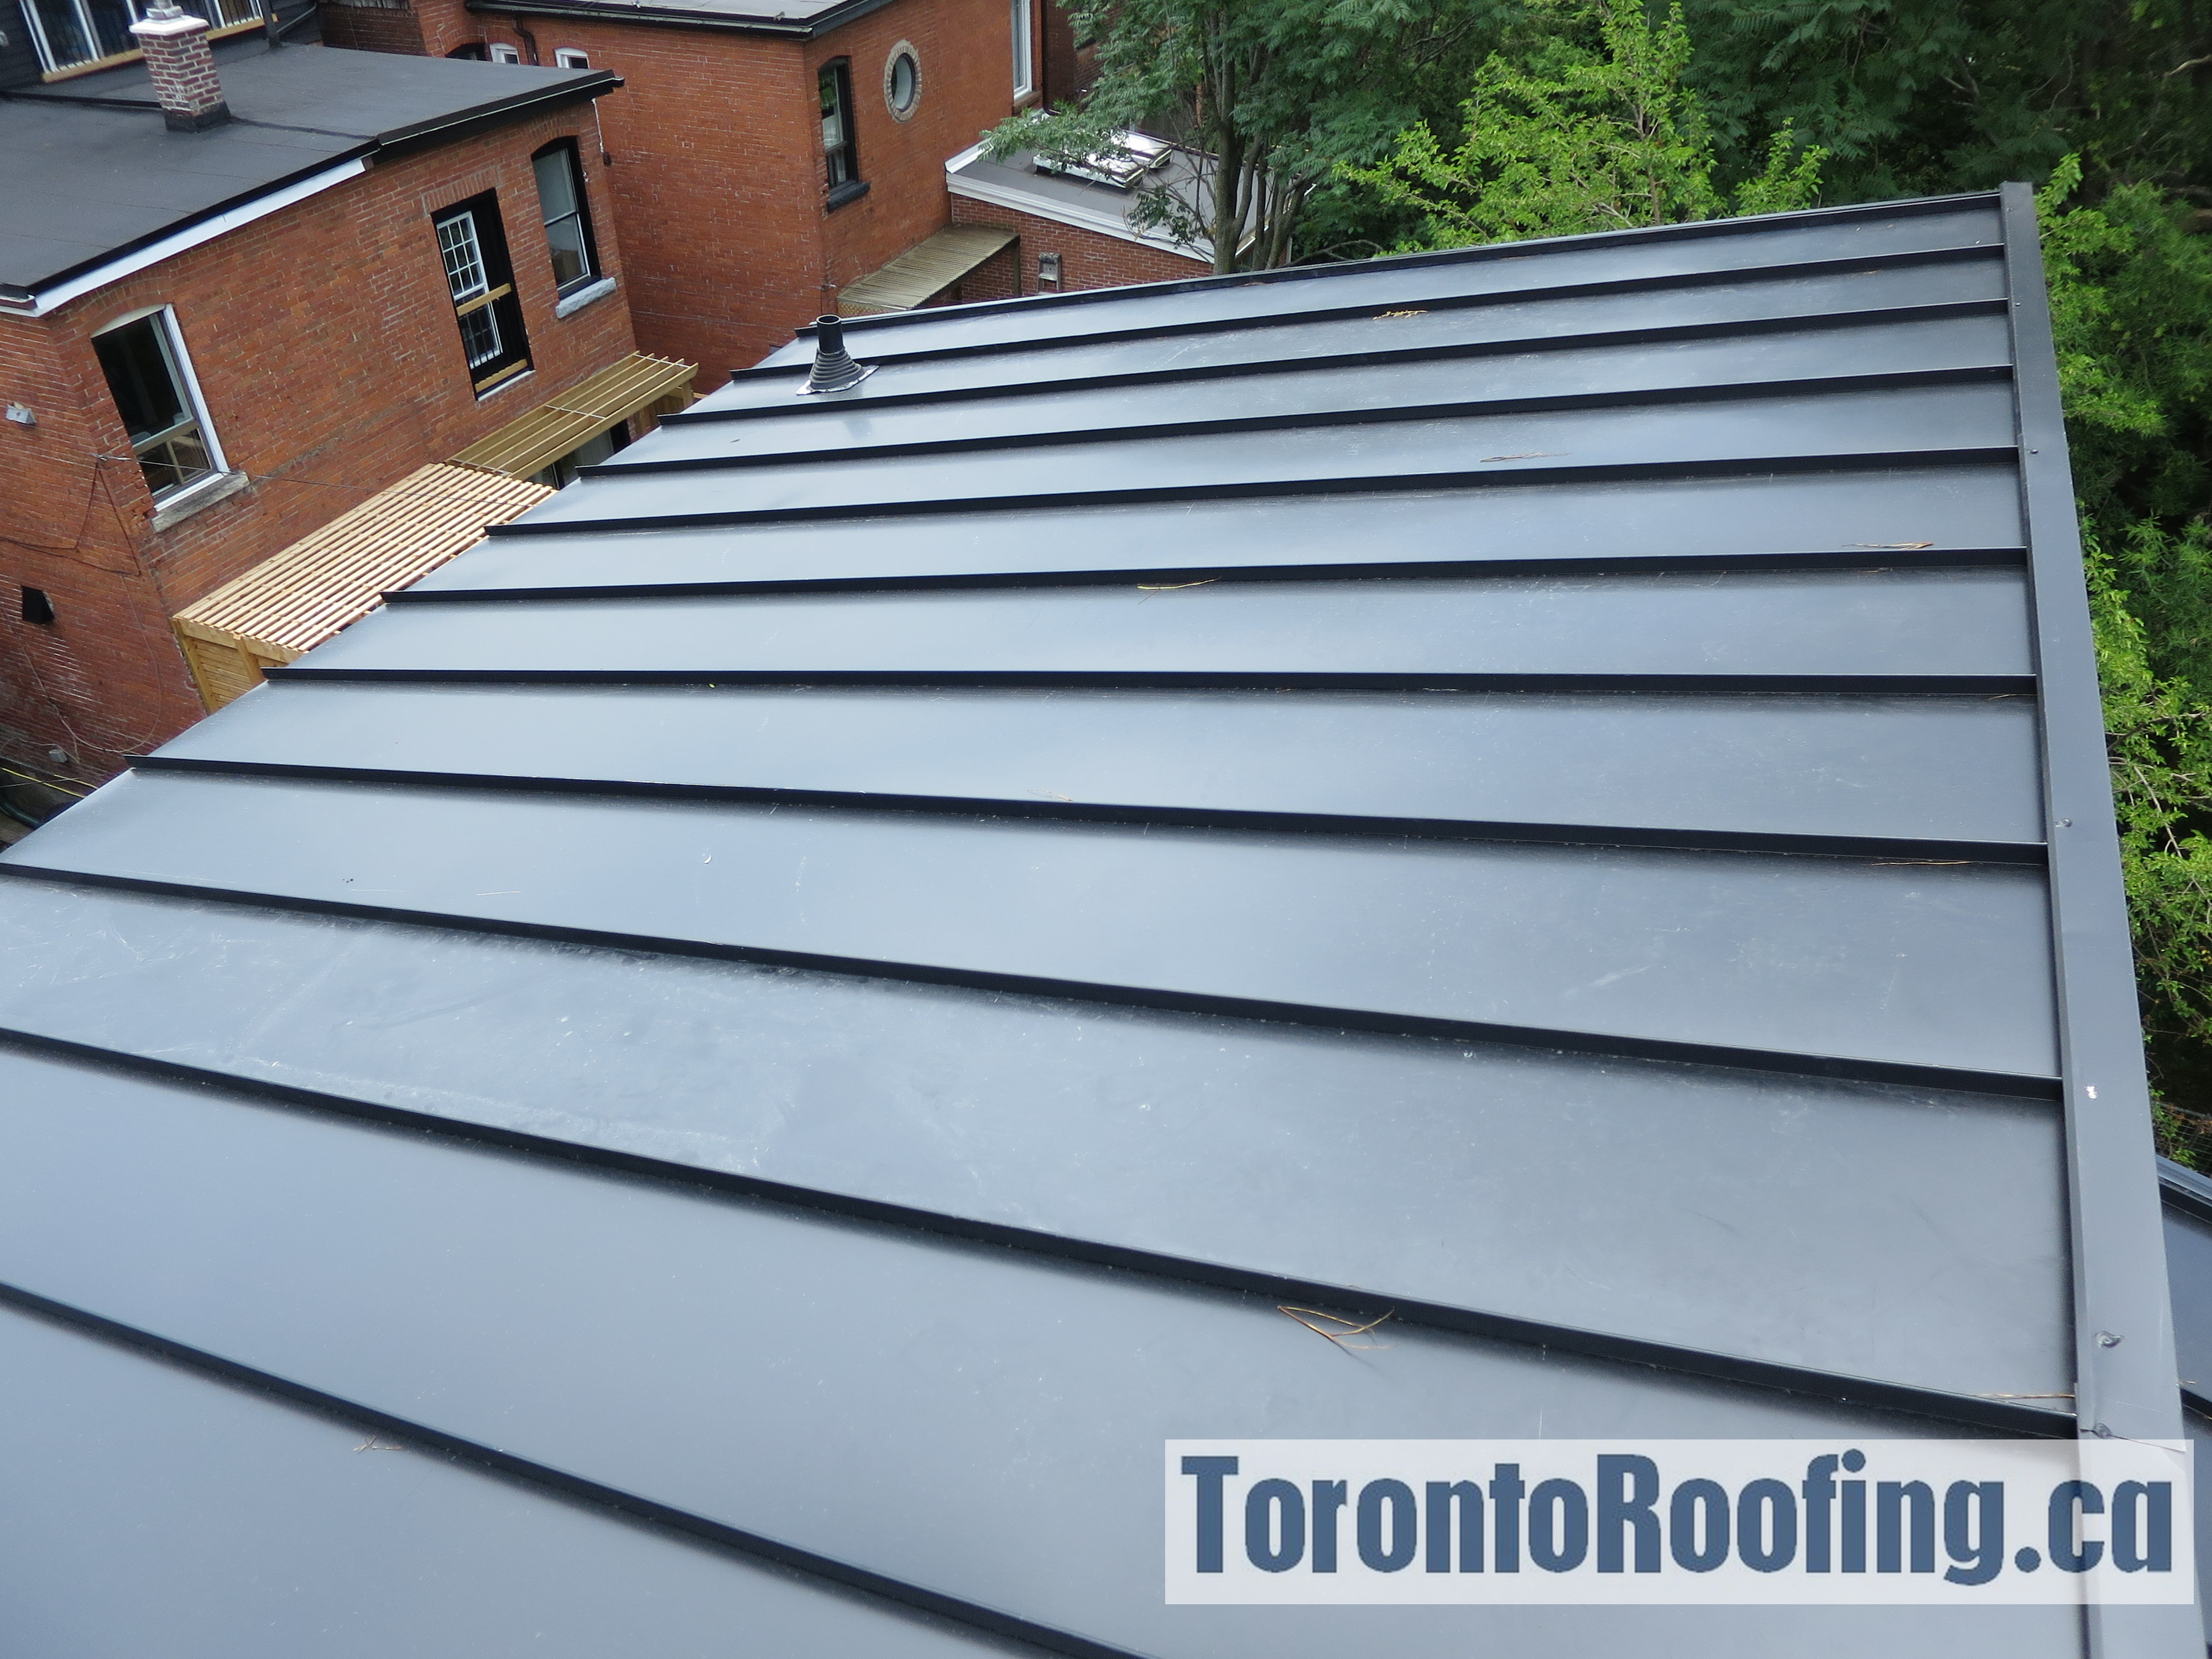 toronto-roofing-standing-seam-metal-roof-roofing-toronto-metal-roofing-roofing-contractor-5